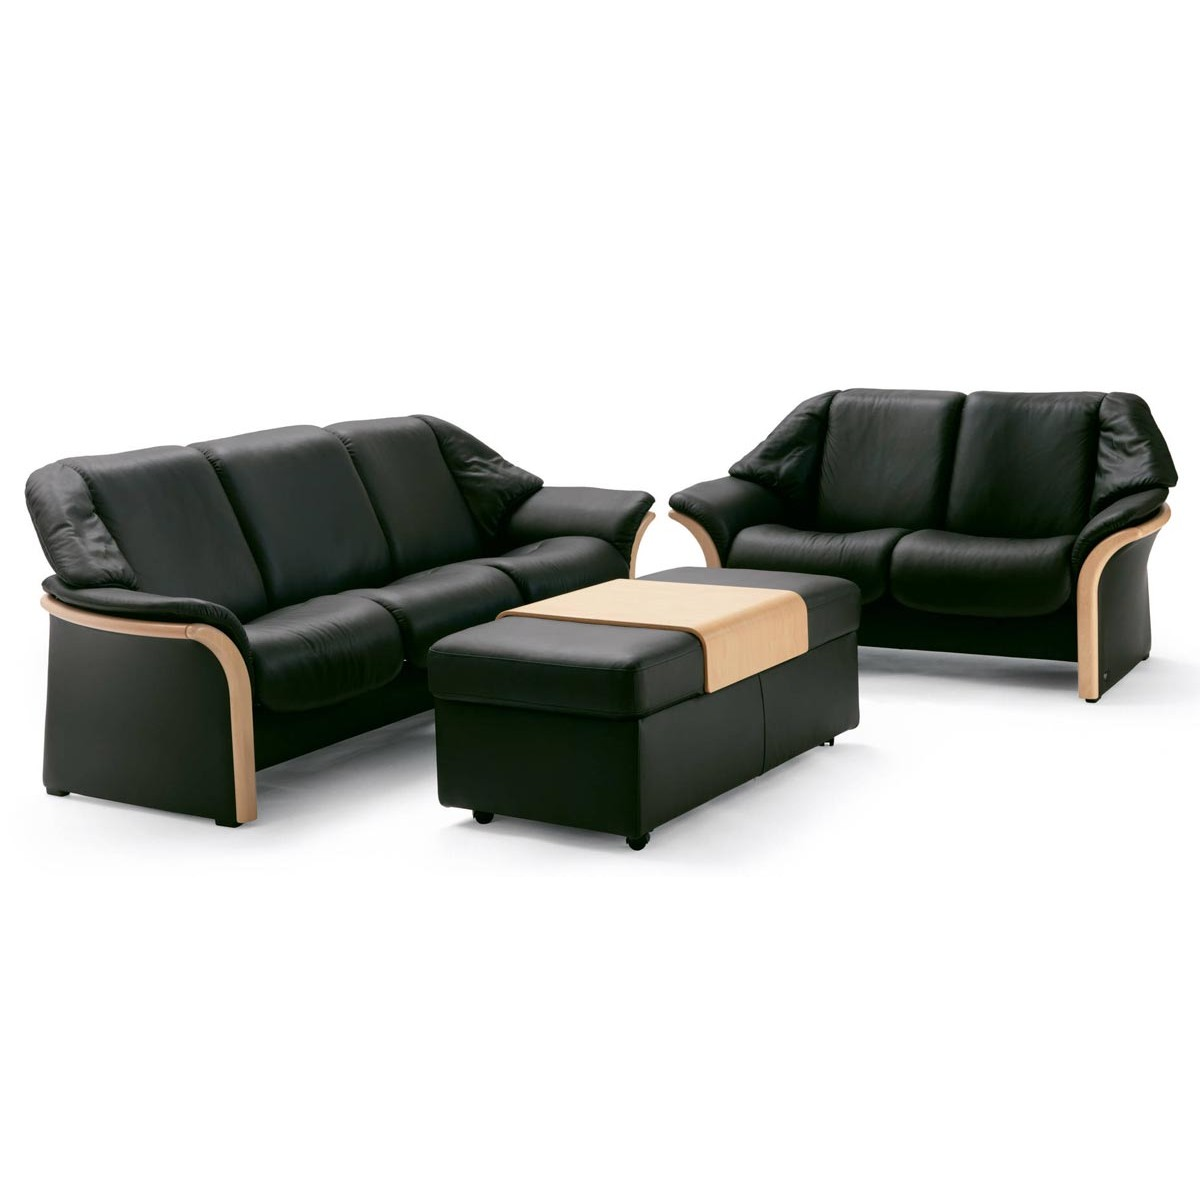 Stressless Eldorado Low Back Sofa